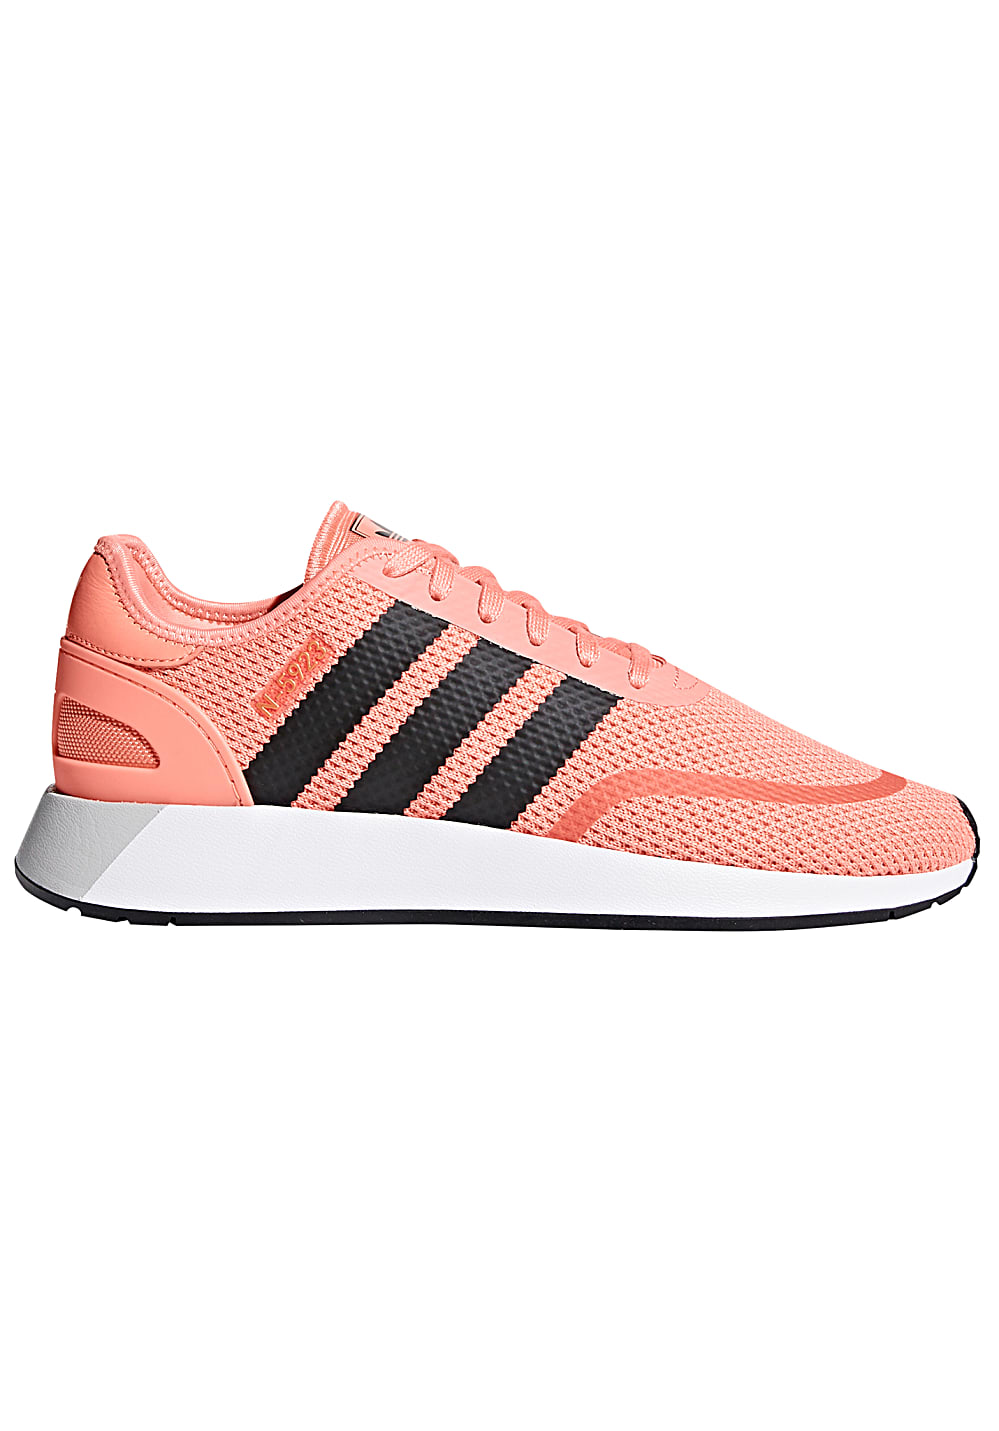 ADIDAS ORIGINALS N-5923 - Sneakers for Men - Pink